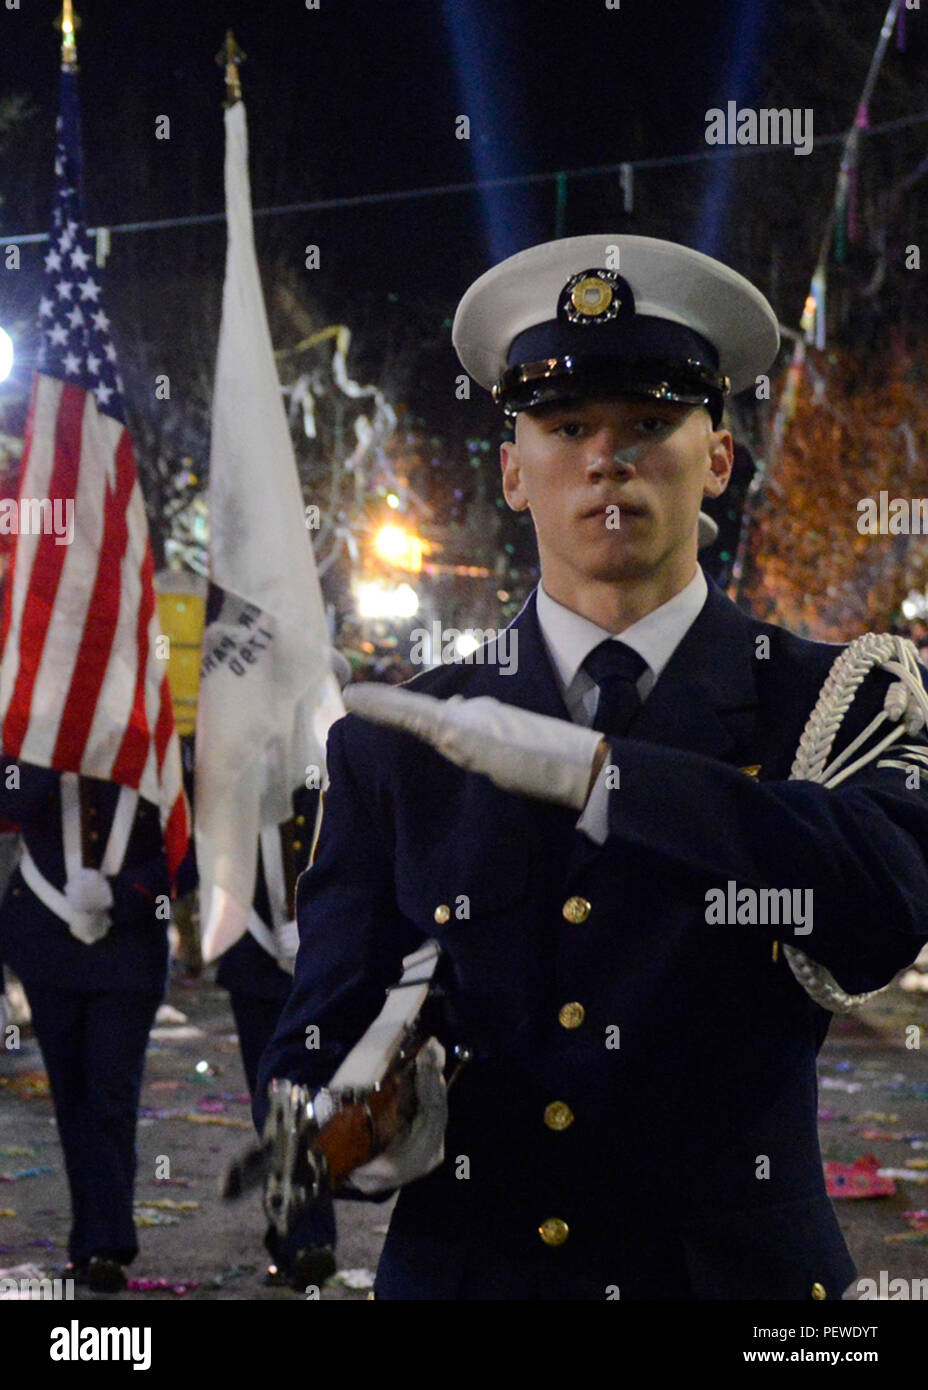 A member of the Coast Guard Ceremonial Honor Guard marches down the streets of New Orleans during the 2016 Bacchuc Mardi Gras Parade while performing a rifle routine, Feb. 7, 2016. Members of the Coast Guard Ceremonial Honor Guard perform silent drills around the country as representatives of the Coast Guard. (U.S. Coast Guard photo by Petty Officer 2nd Class Jonathan Lally) Stock Photo